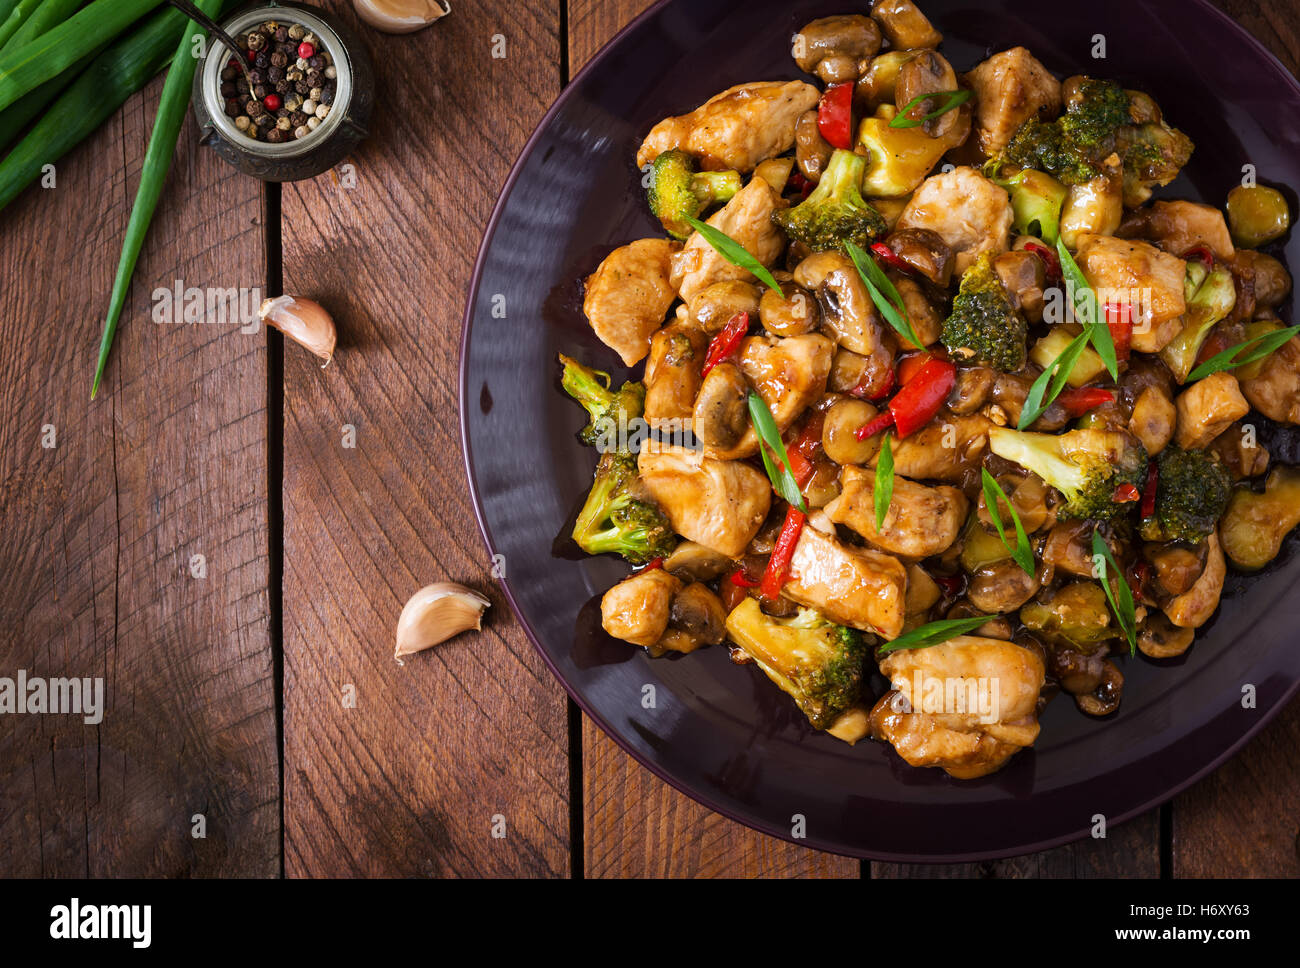 Stir Fry With Chicken Mushrooms Broccoli And Peppers Chinese Food Top View